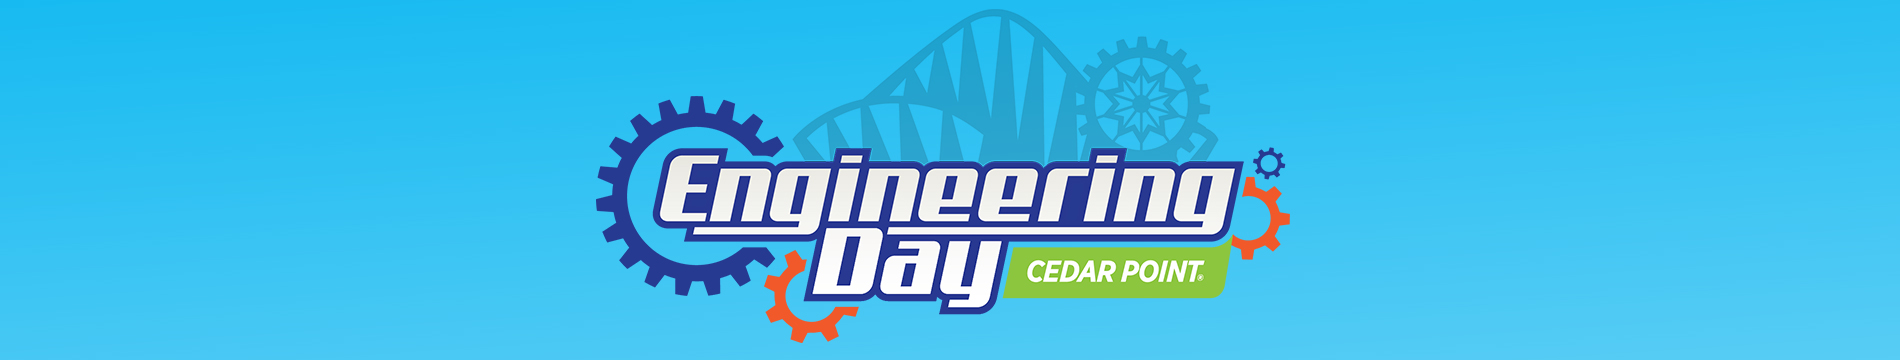 Engineering Day at Cedar Point